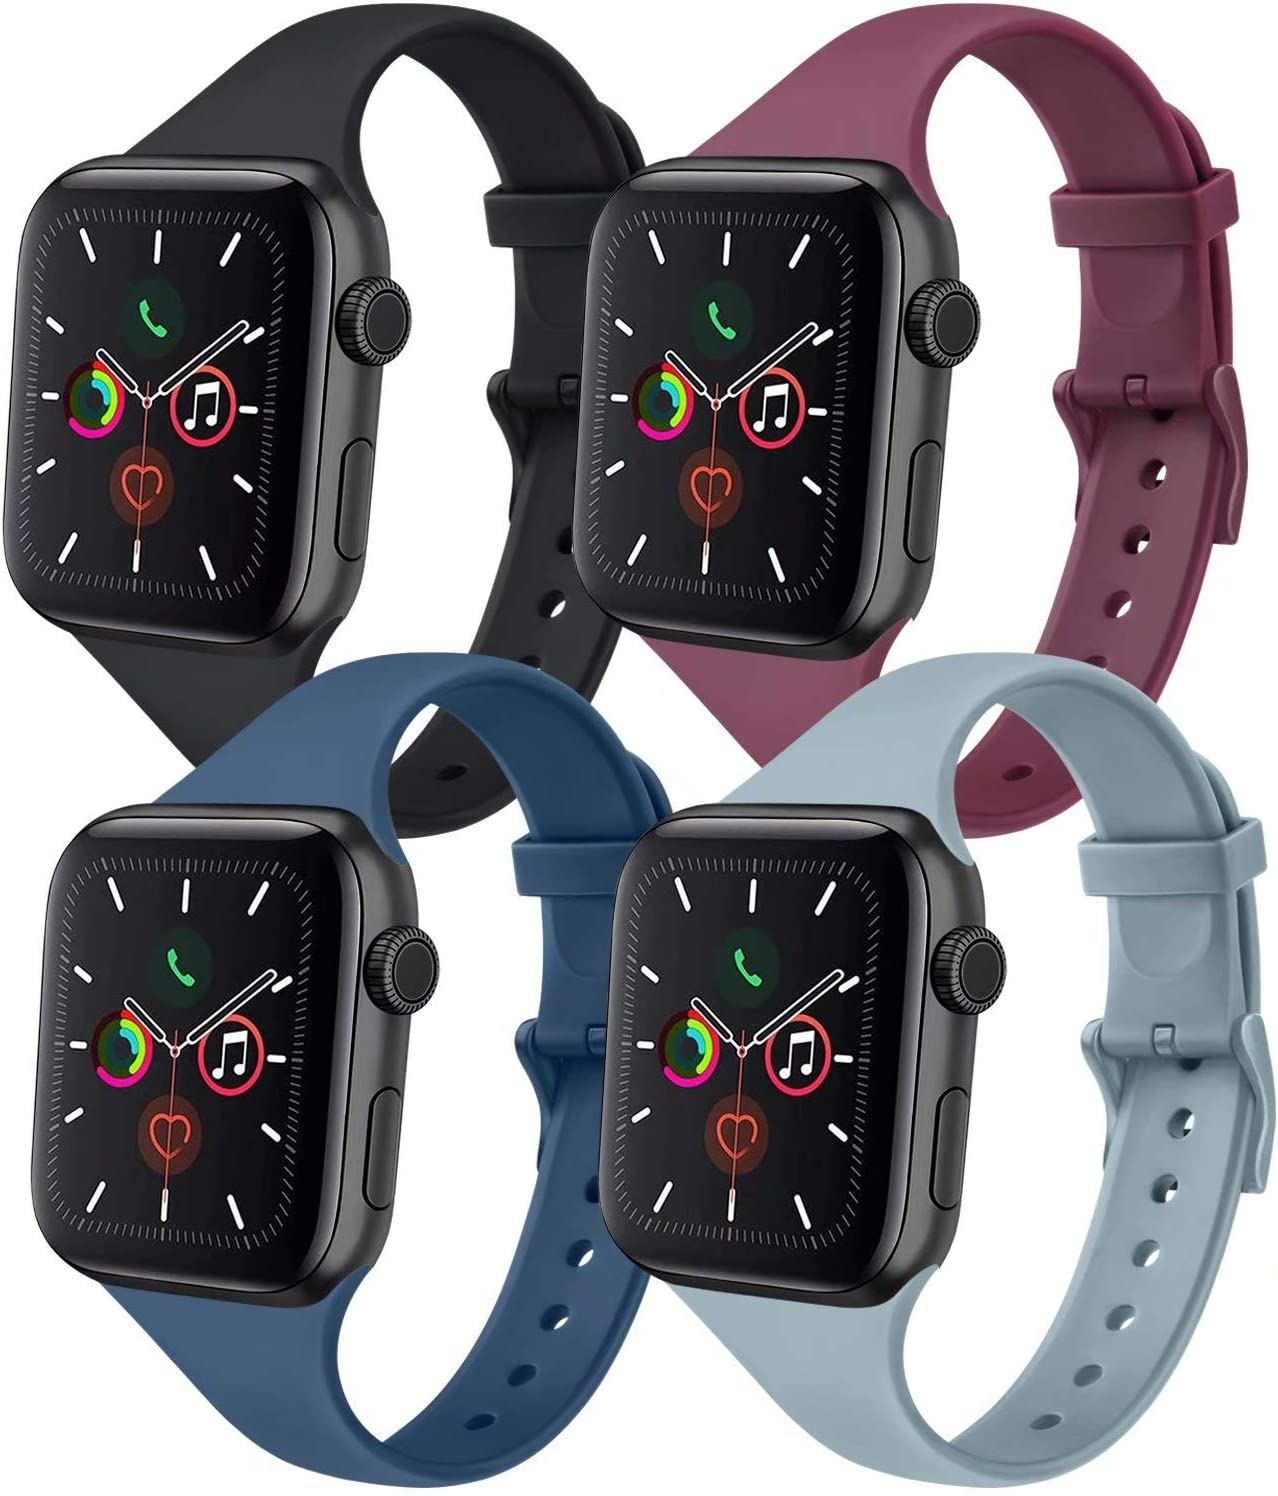 IEOVIEE [Pack 4] Silicone Slim Bands Compatible with Apple Watch bands 42mm 38mm 44mm 40mm Series 6 5 4 3 & SE, Narrow Replacement Wristbands (Black/Gray/Navy Blue/Wine Red, 42mm/44mm M/L)